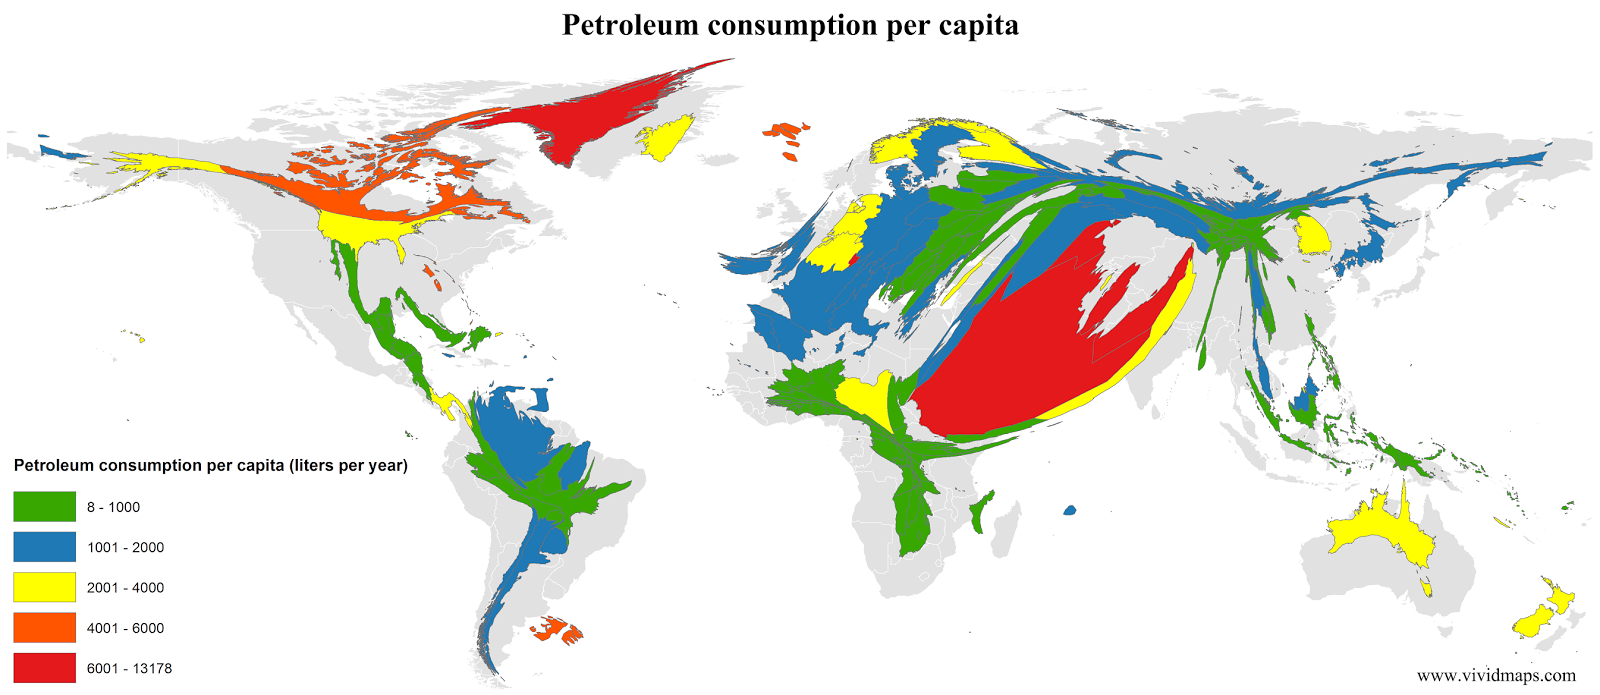 Petroleum consumption per capita